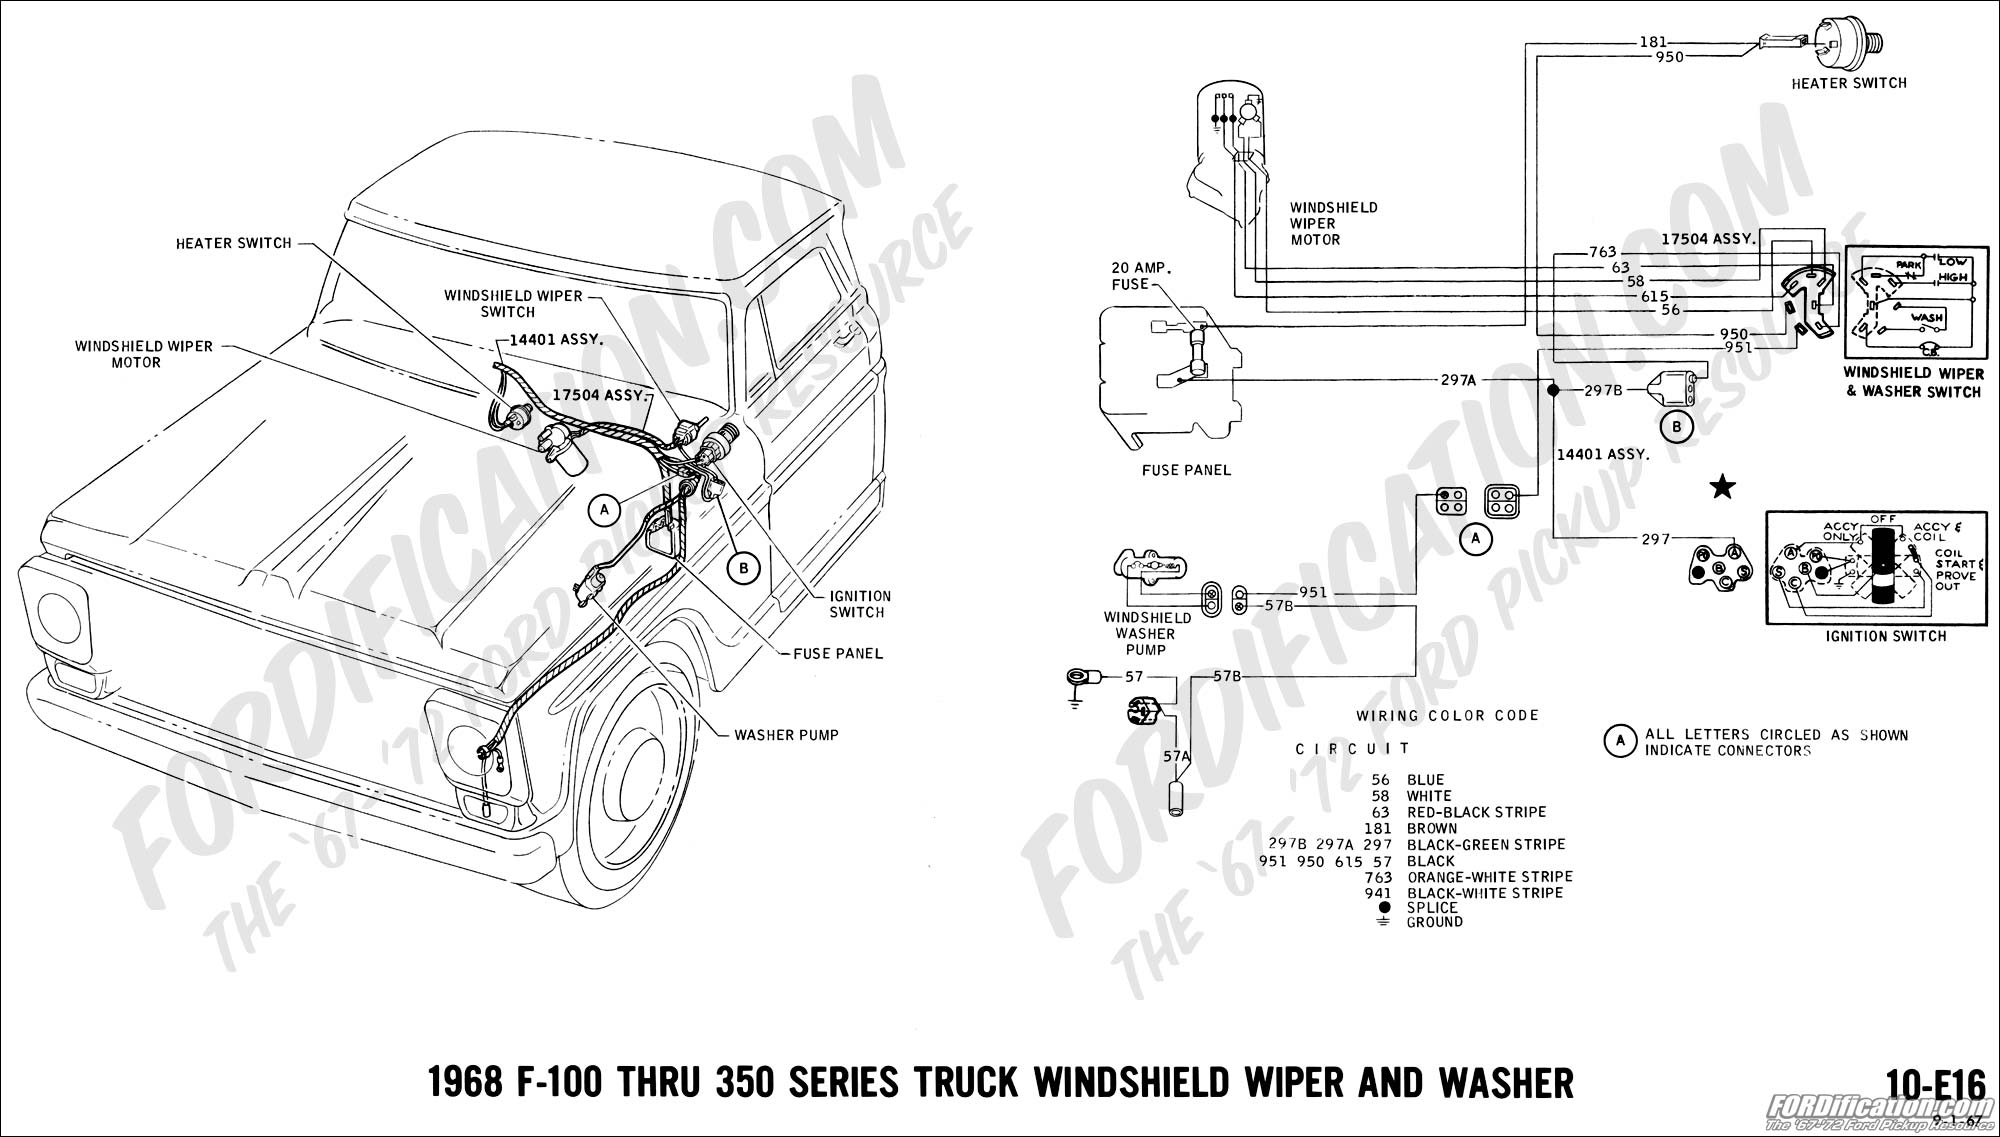 88 Vw Cabriolet Engine Diagram Get Free Image About Wiring Diagram